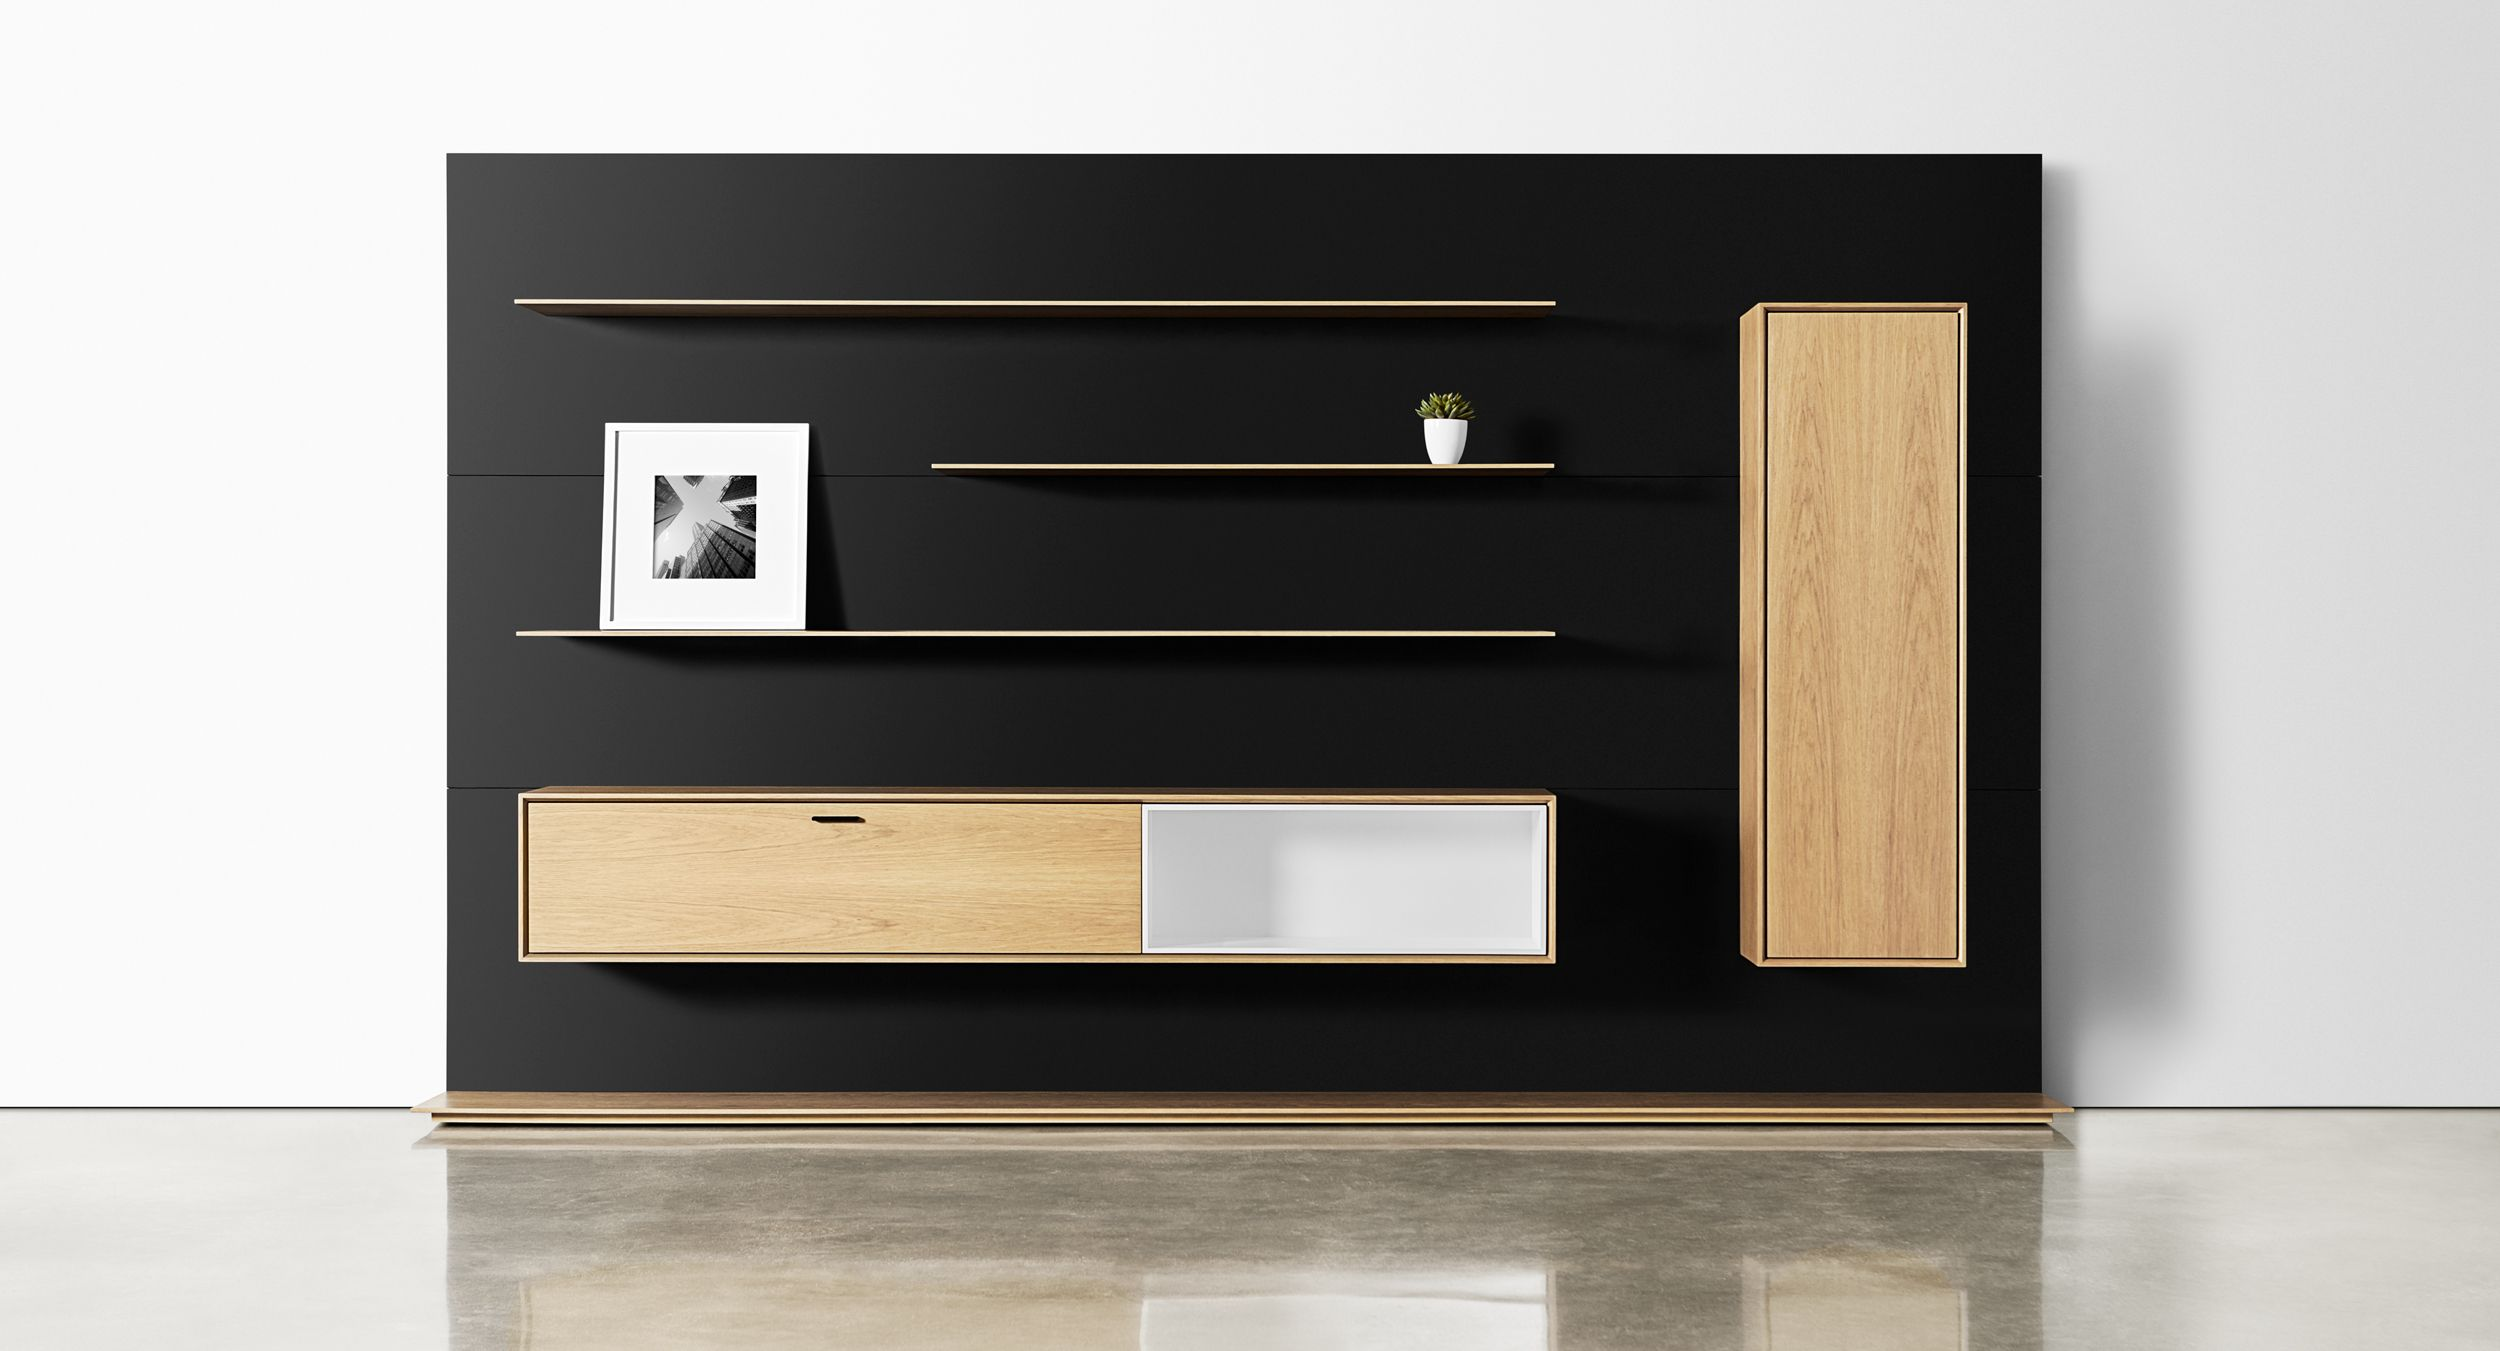 An executive workwall grants useful storage in light, beautiful scale.